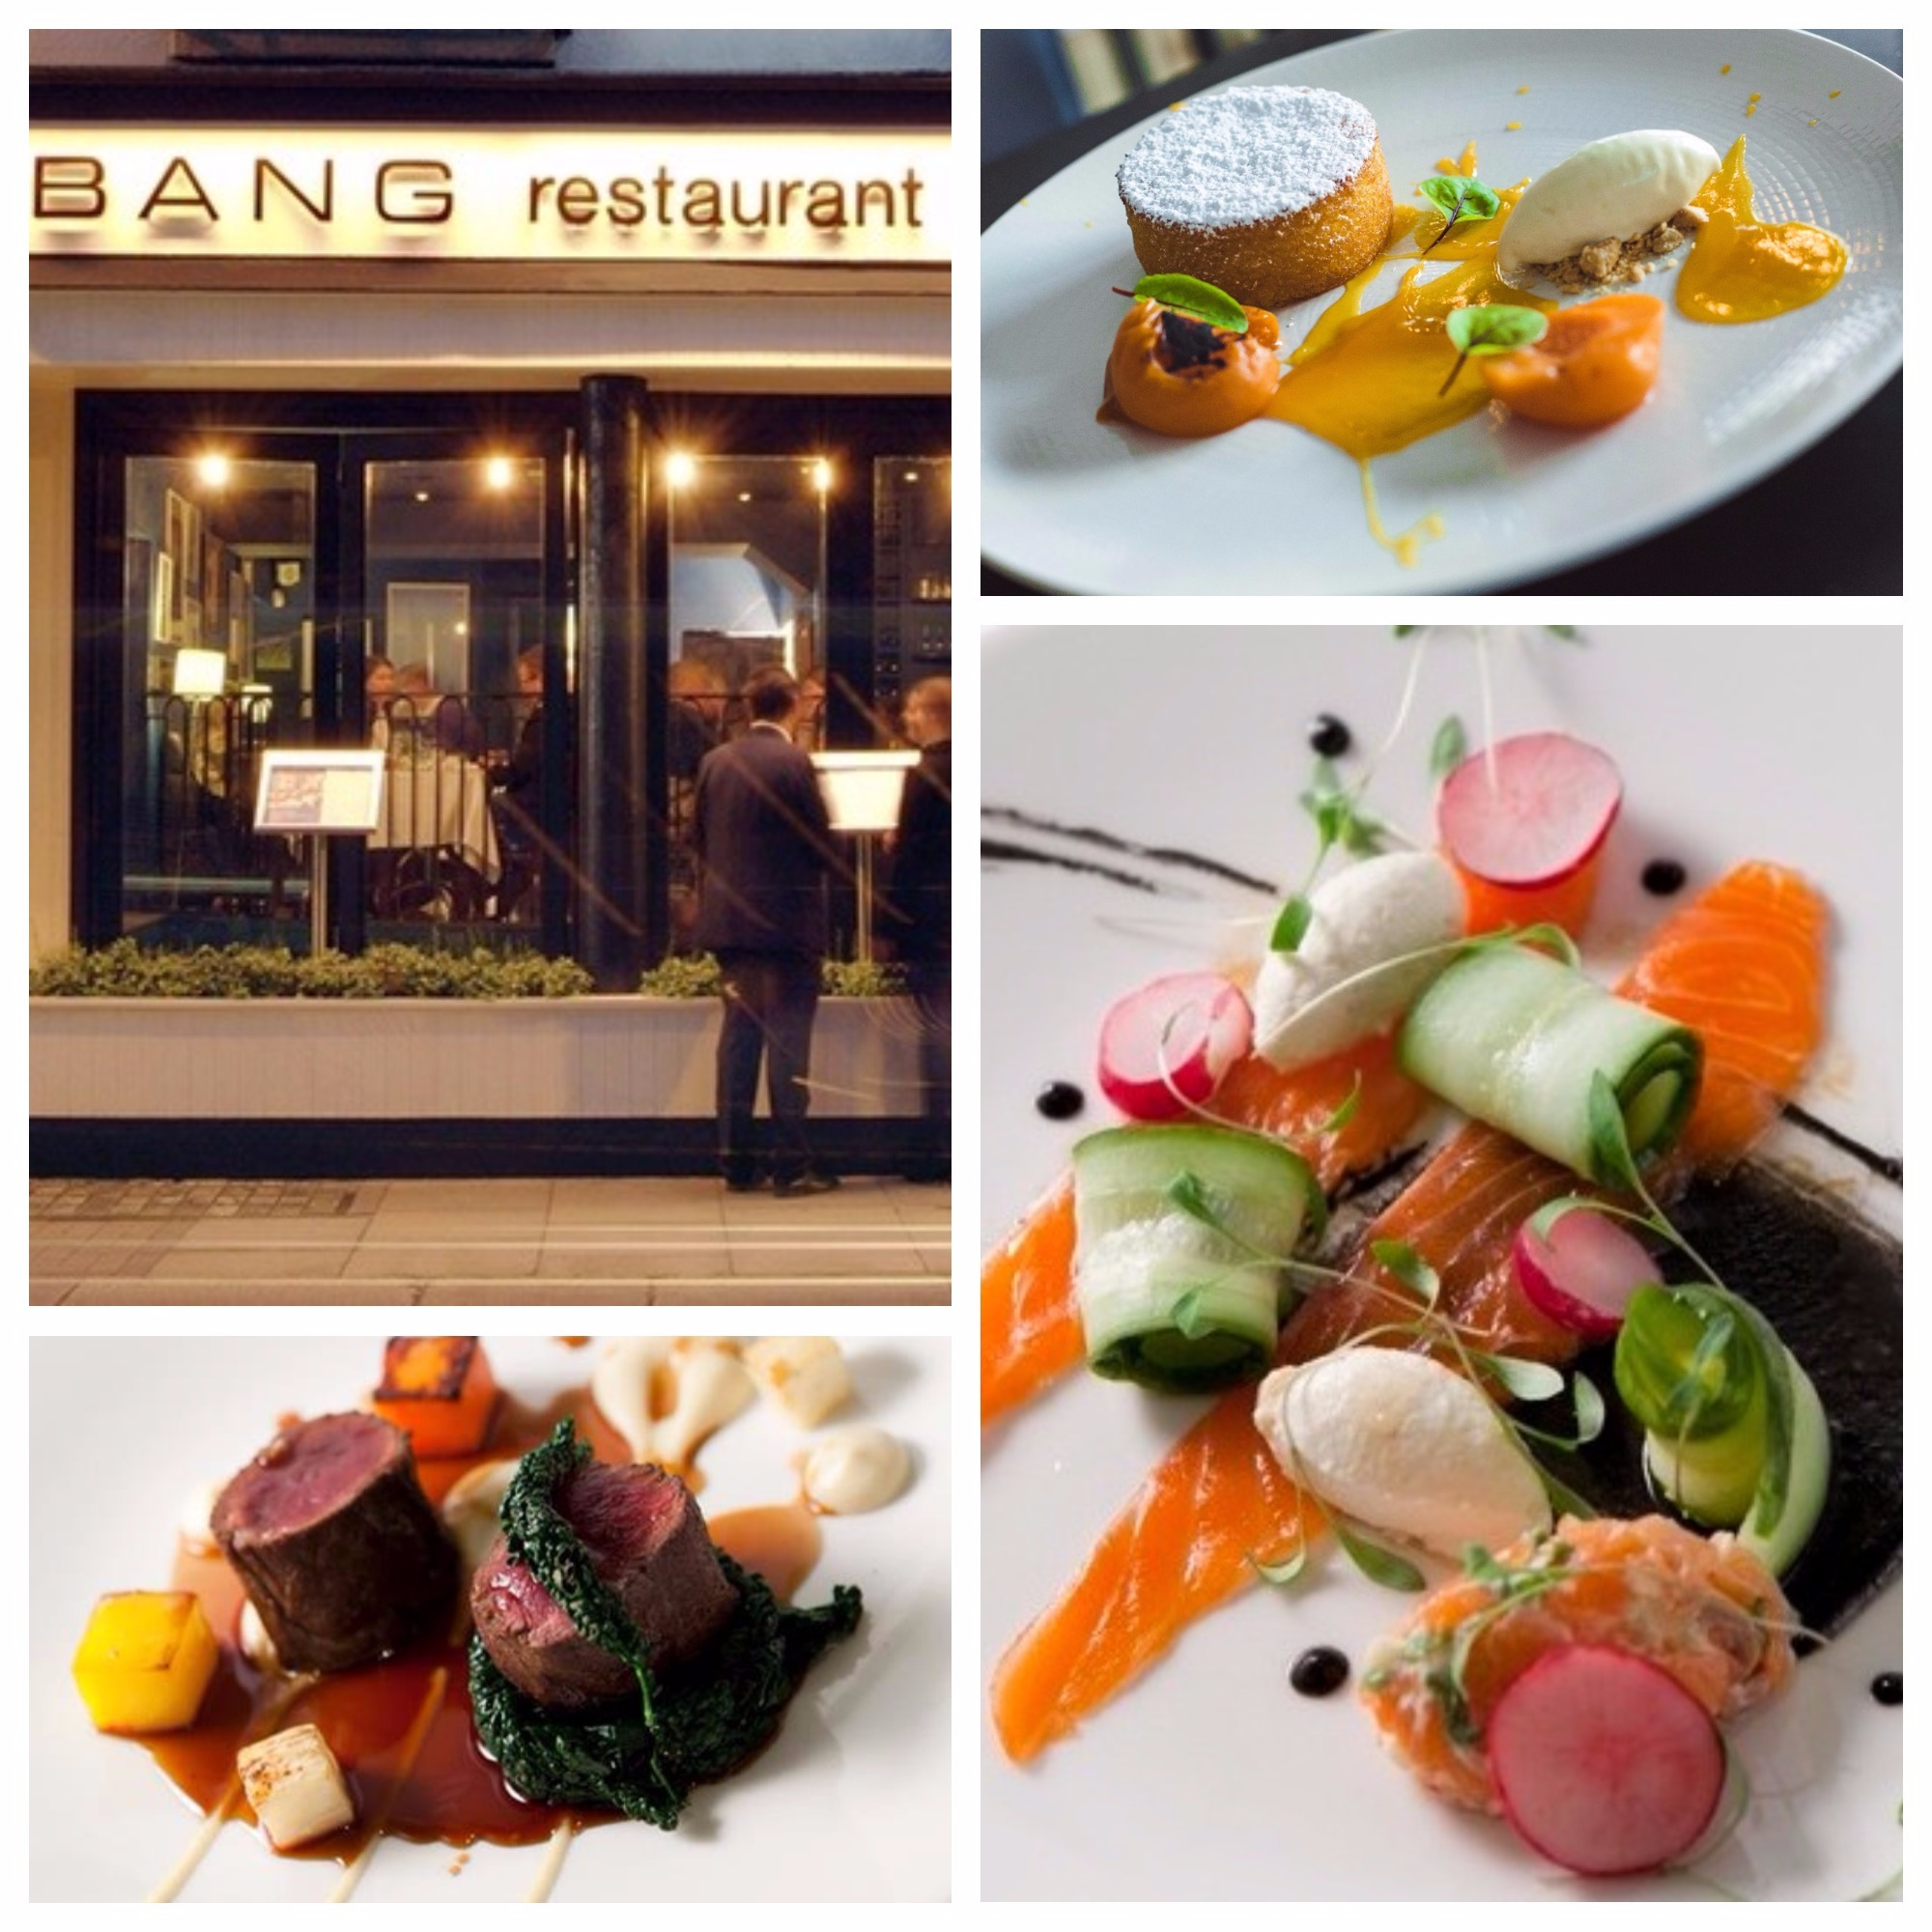 BANG restaurant-deal of the day-meal for two-tasting menu-fine dining-dublin-menupages